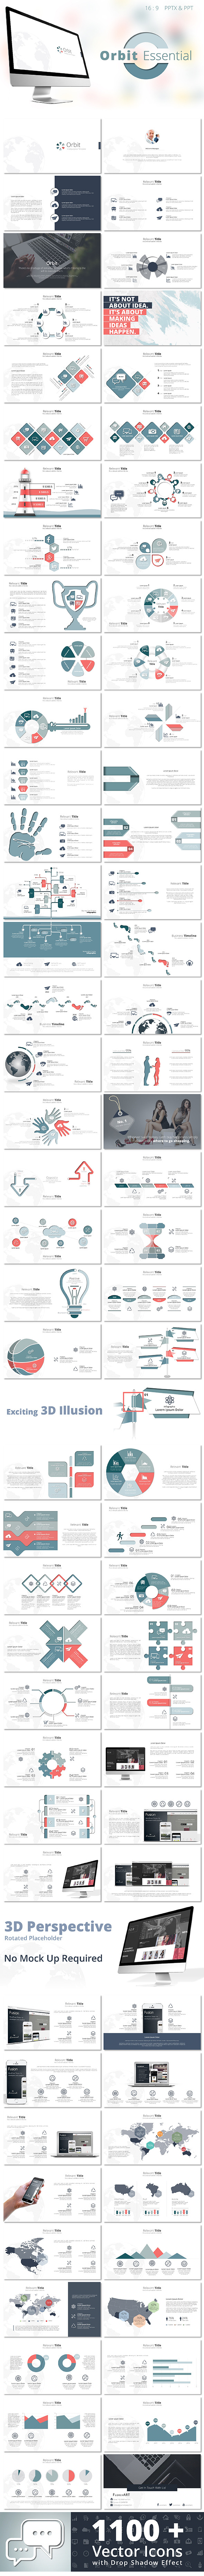 GraphicRiver Orbit Essential PowerPoint Presentation 11767528